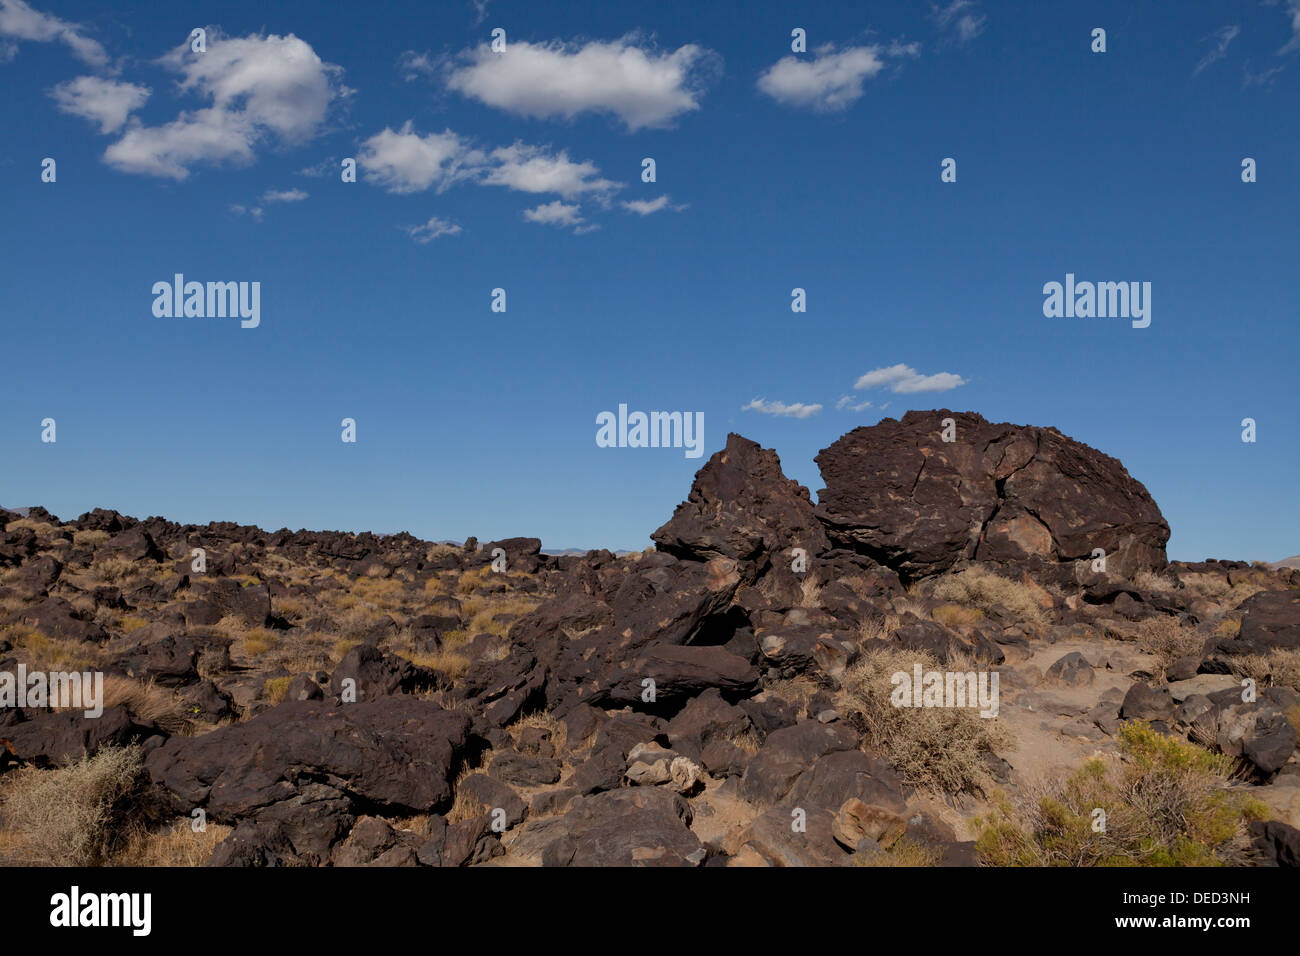 Volcanic basalt rock formation - California USA - Stock Image